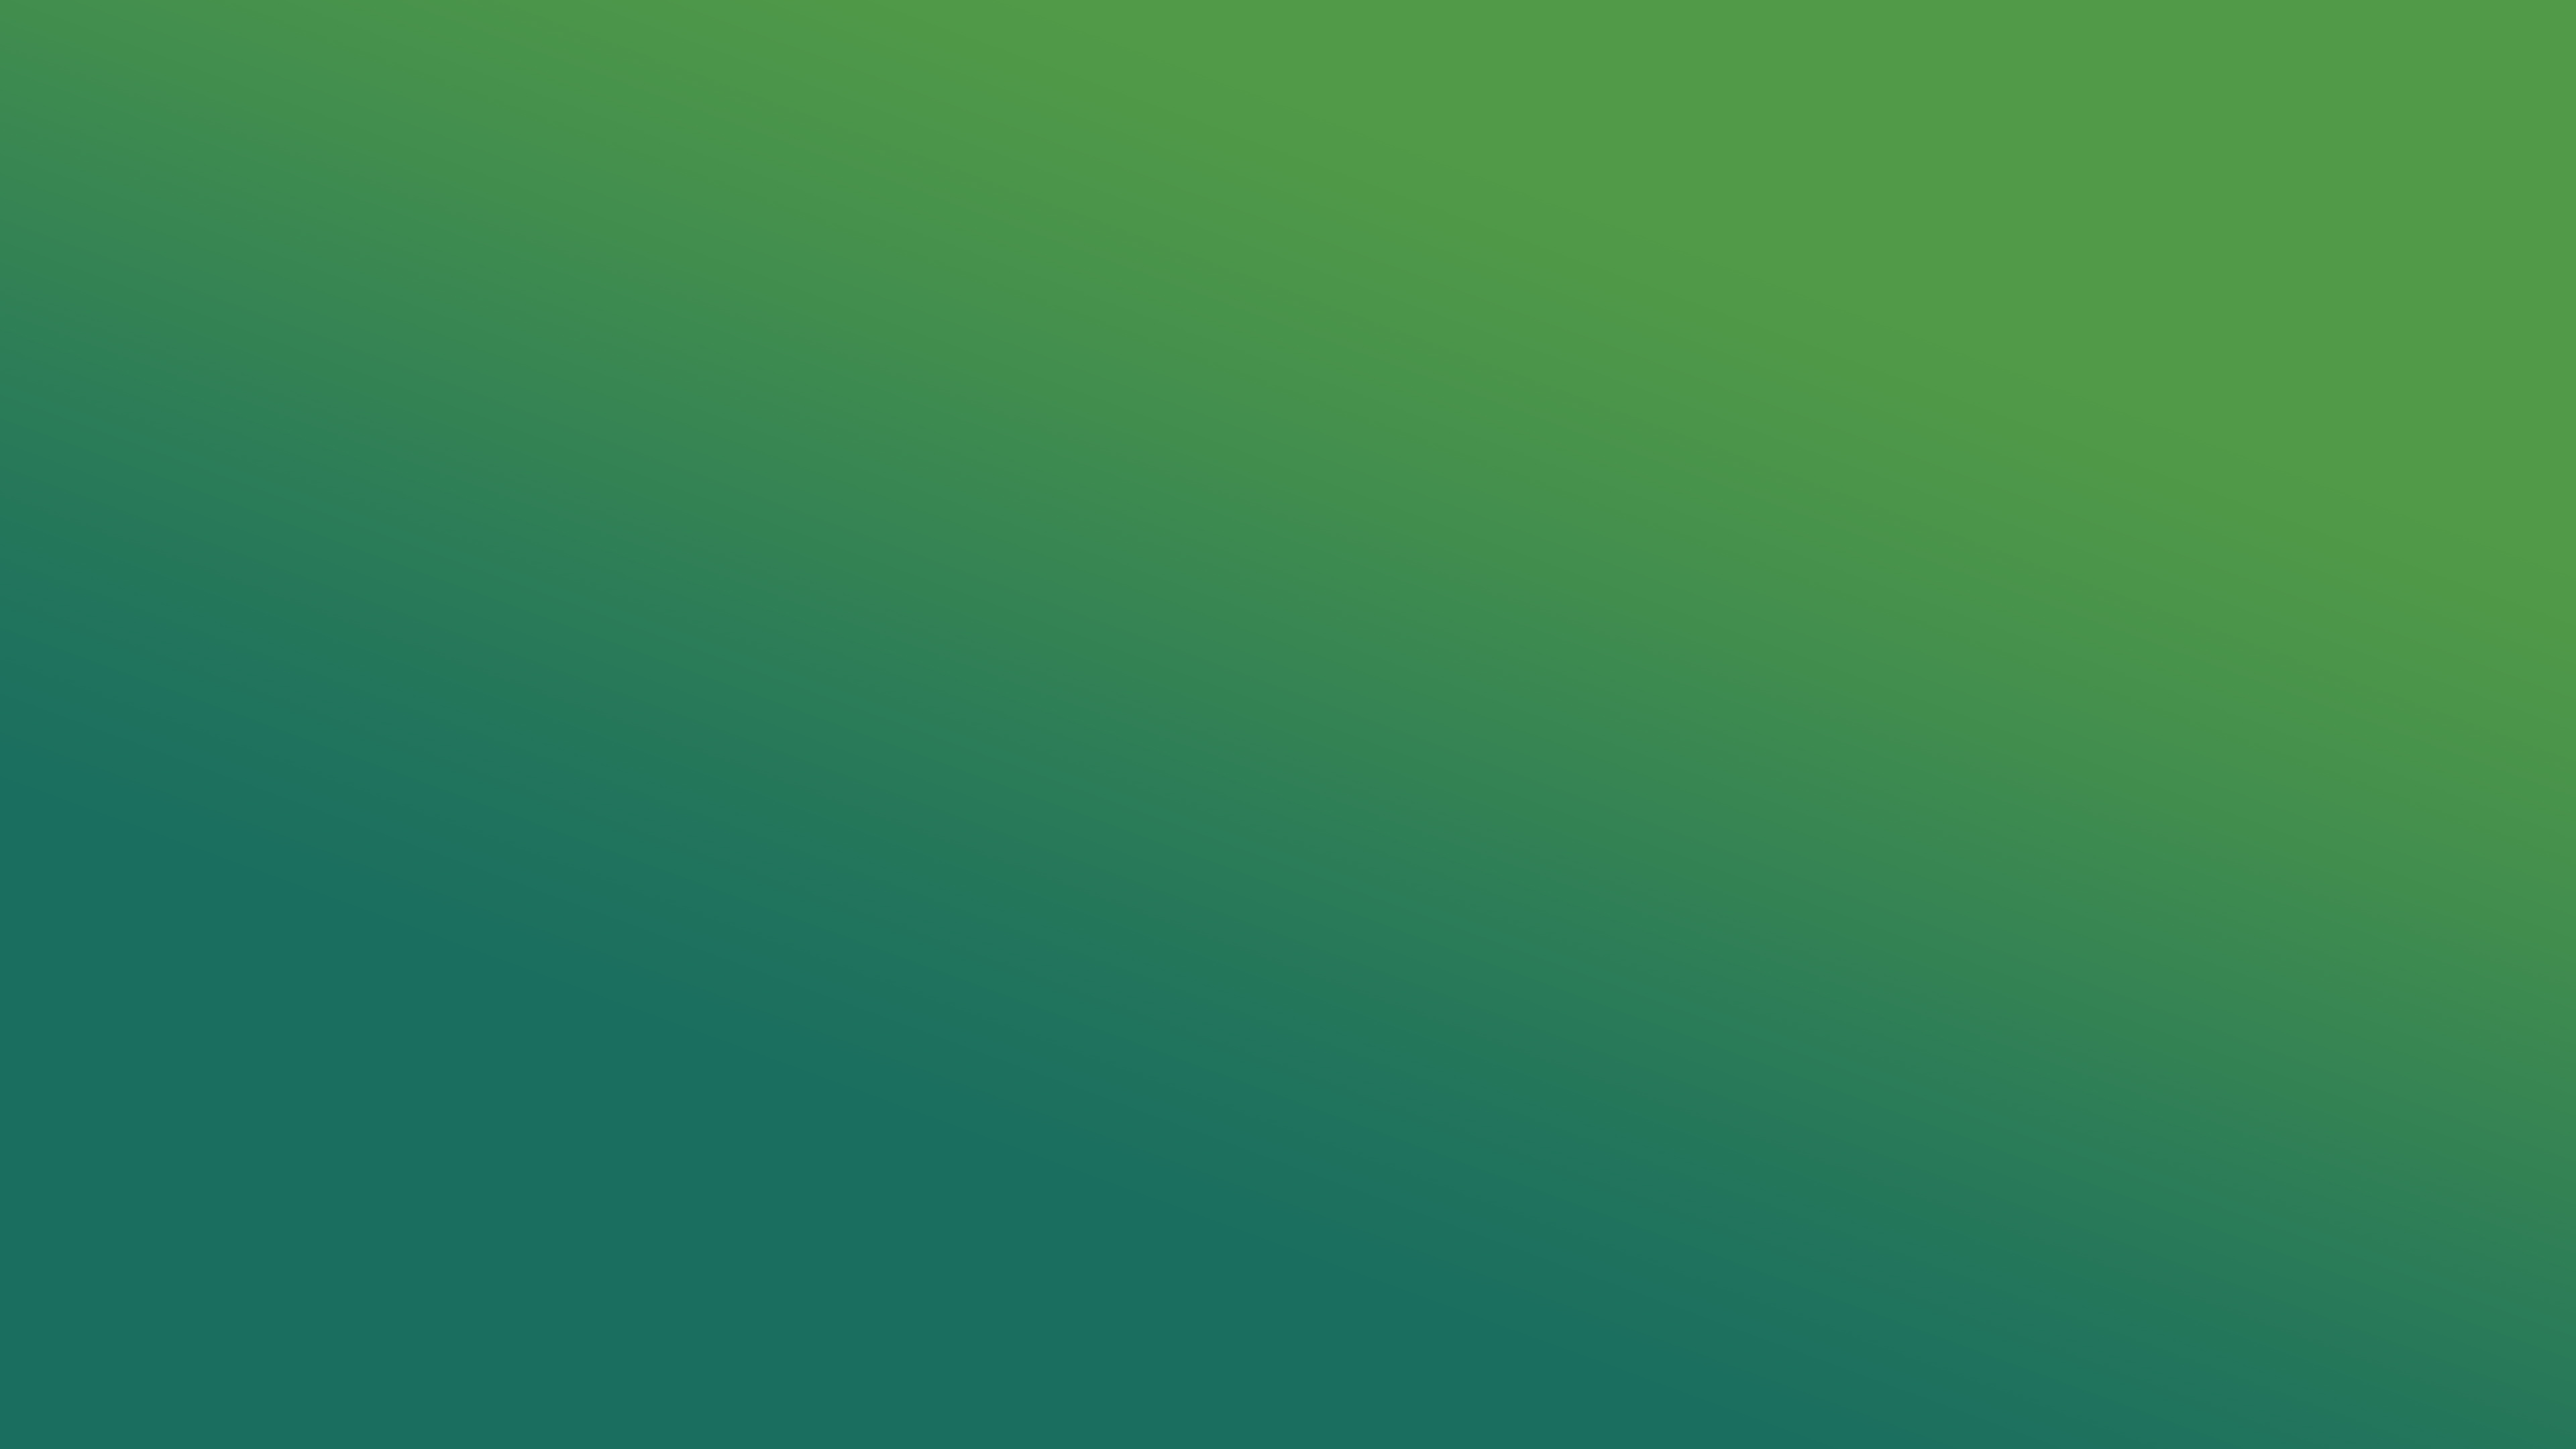 Abstract Green Gradient Hd Abstract 4k Wallpapers Images